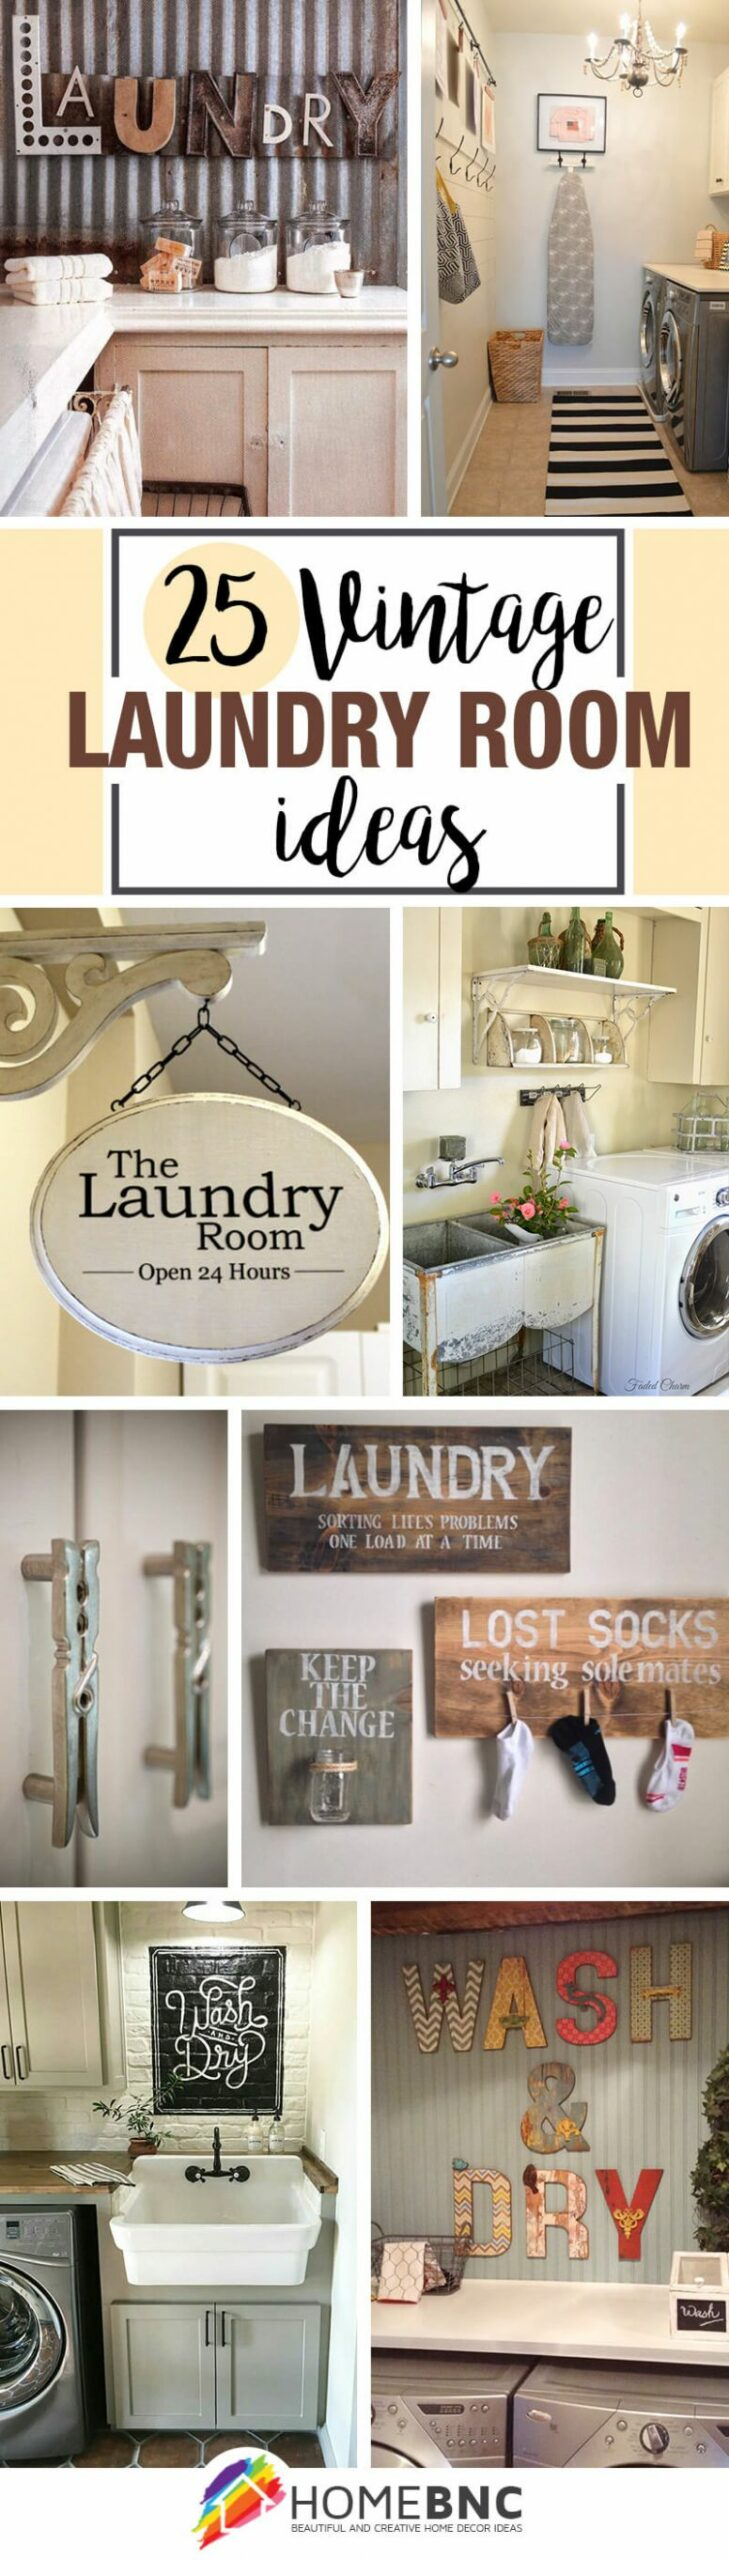 12 Best Vintage Laundry Room Decor Ideas and Designs for 12